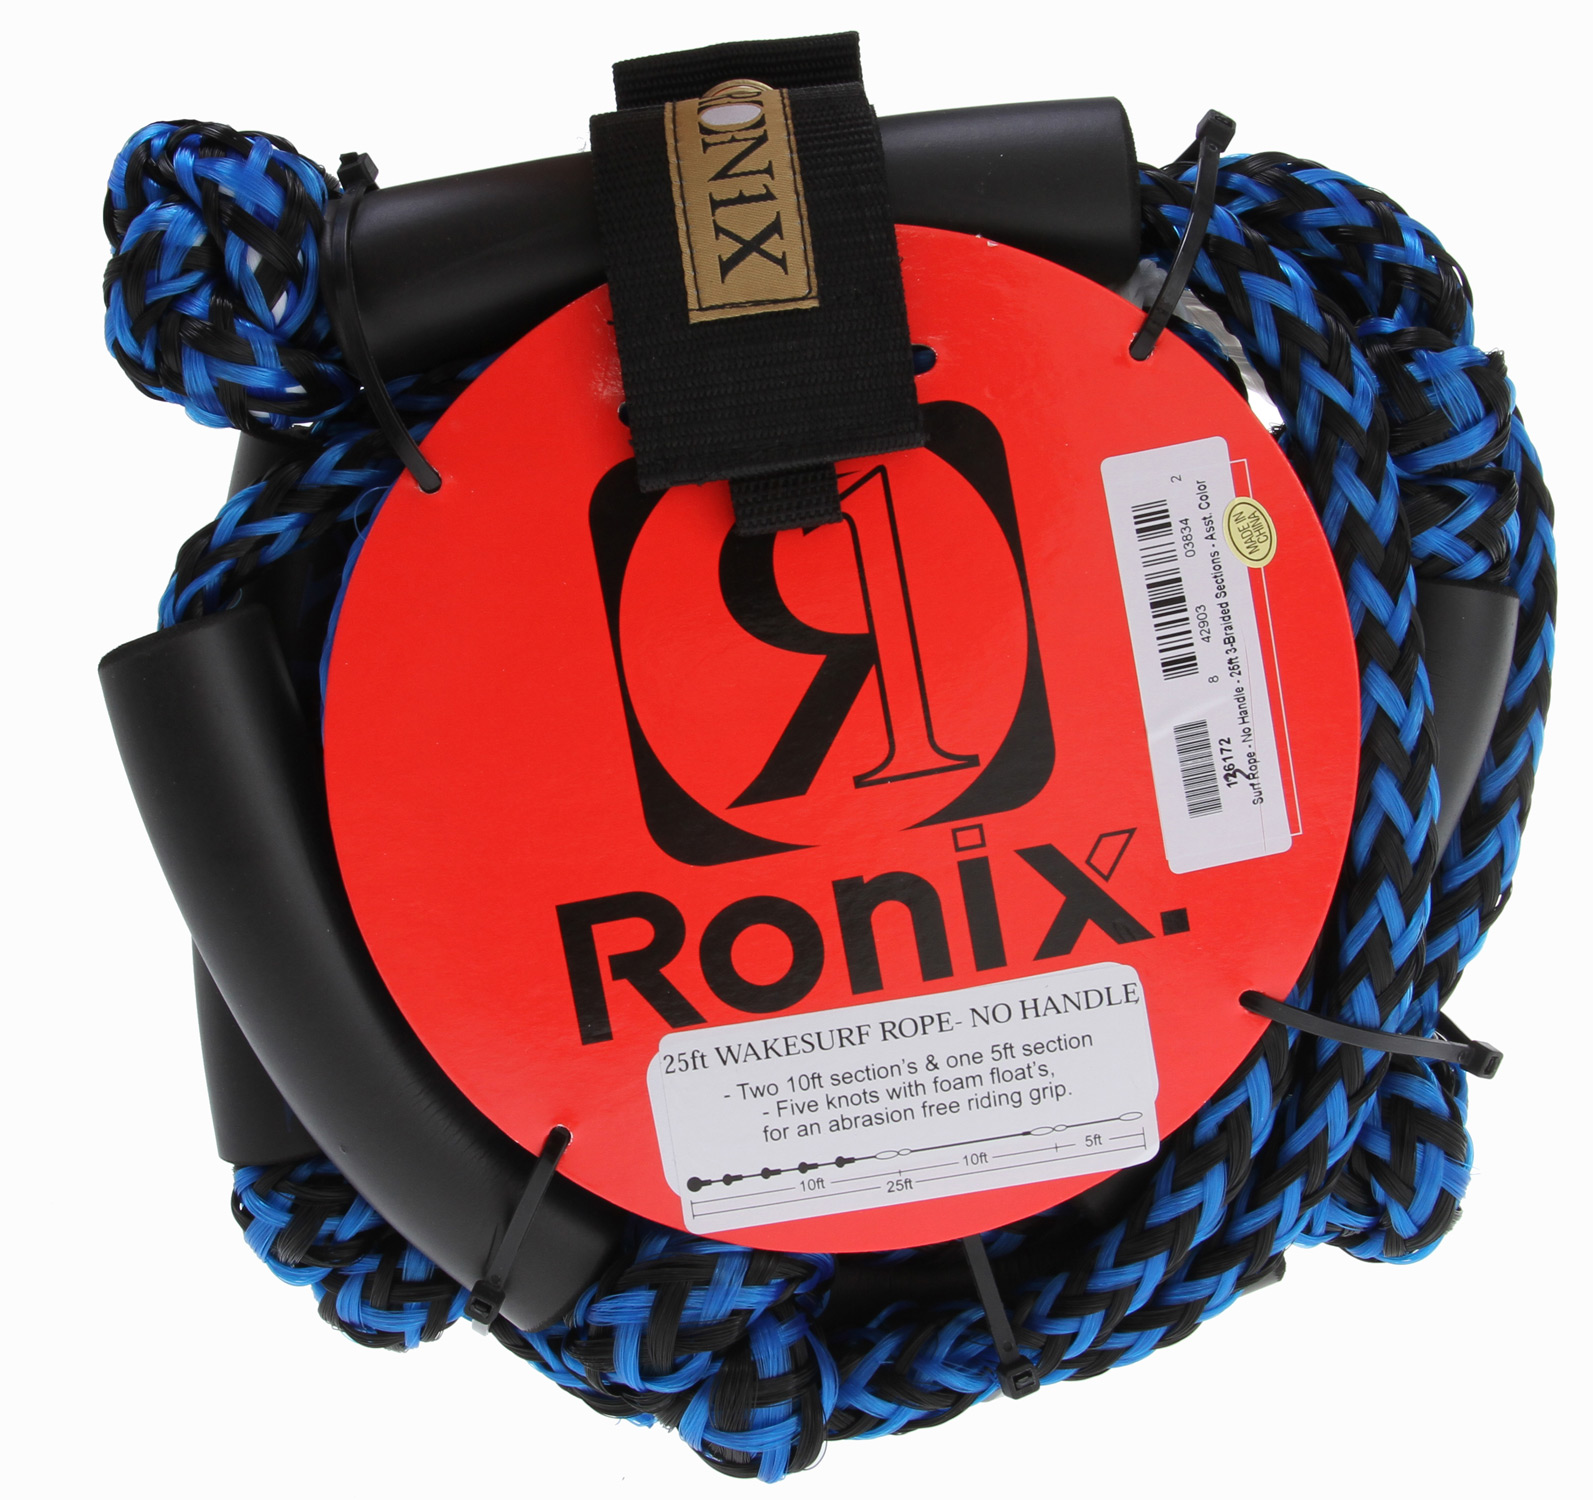 "Surf Key Features of the Ronix Surf Rope No Handle 25Ft: 5 - 4"" diameter knots with foam floats for a abrasion free riding 14"" hide with embroidery grip 0.94"" handle diameter 60ft low stretch PE mainline w/4-sections Filled inside with EVA for flotation (assorted colors) - $44.99"